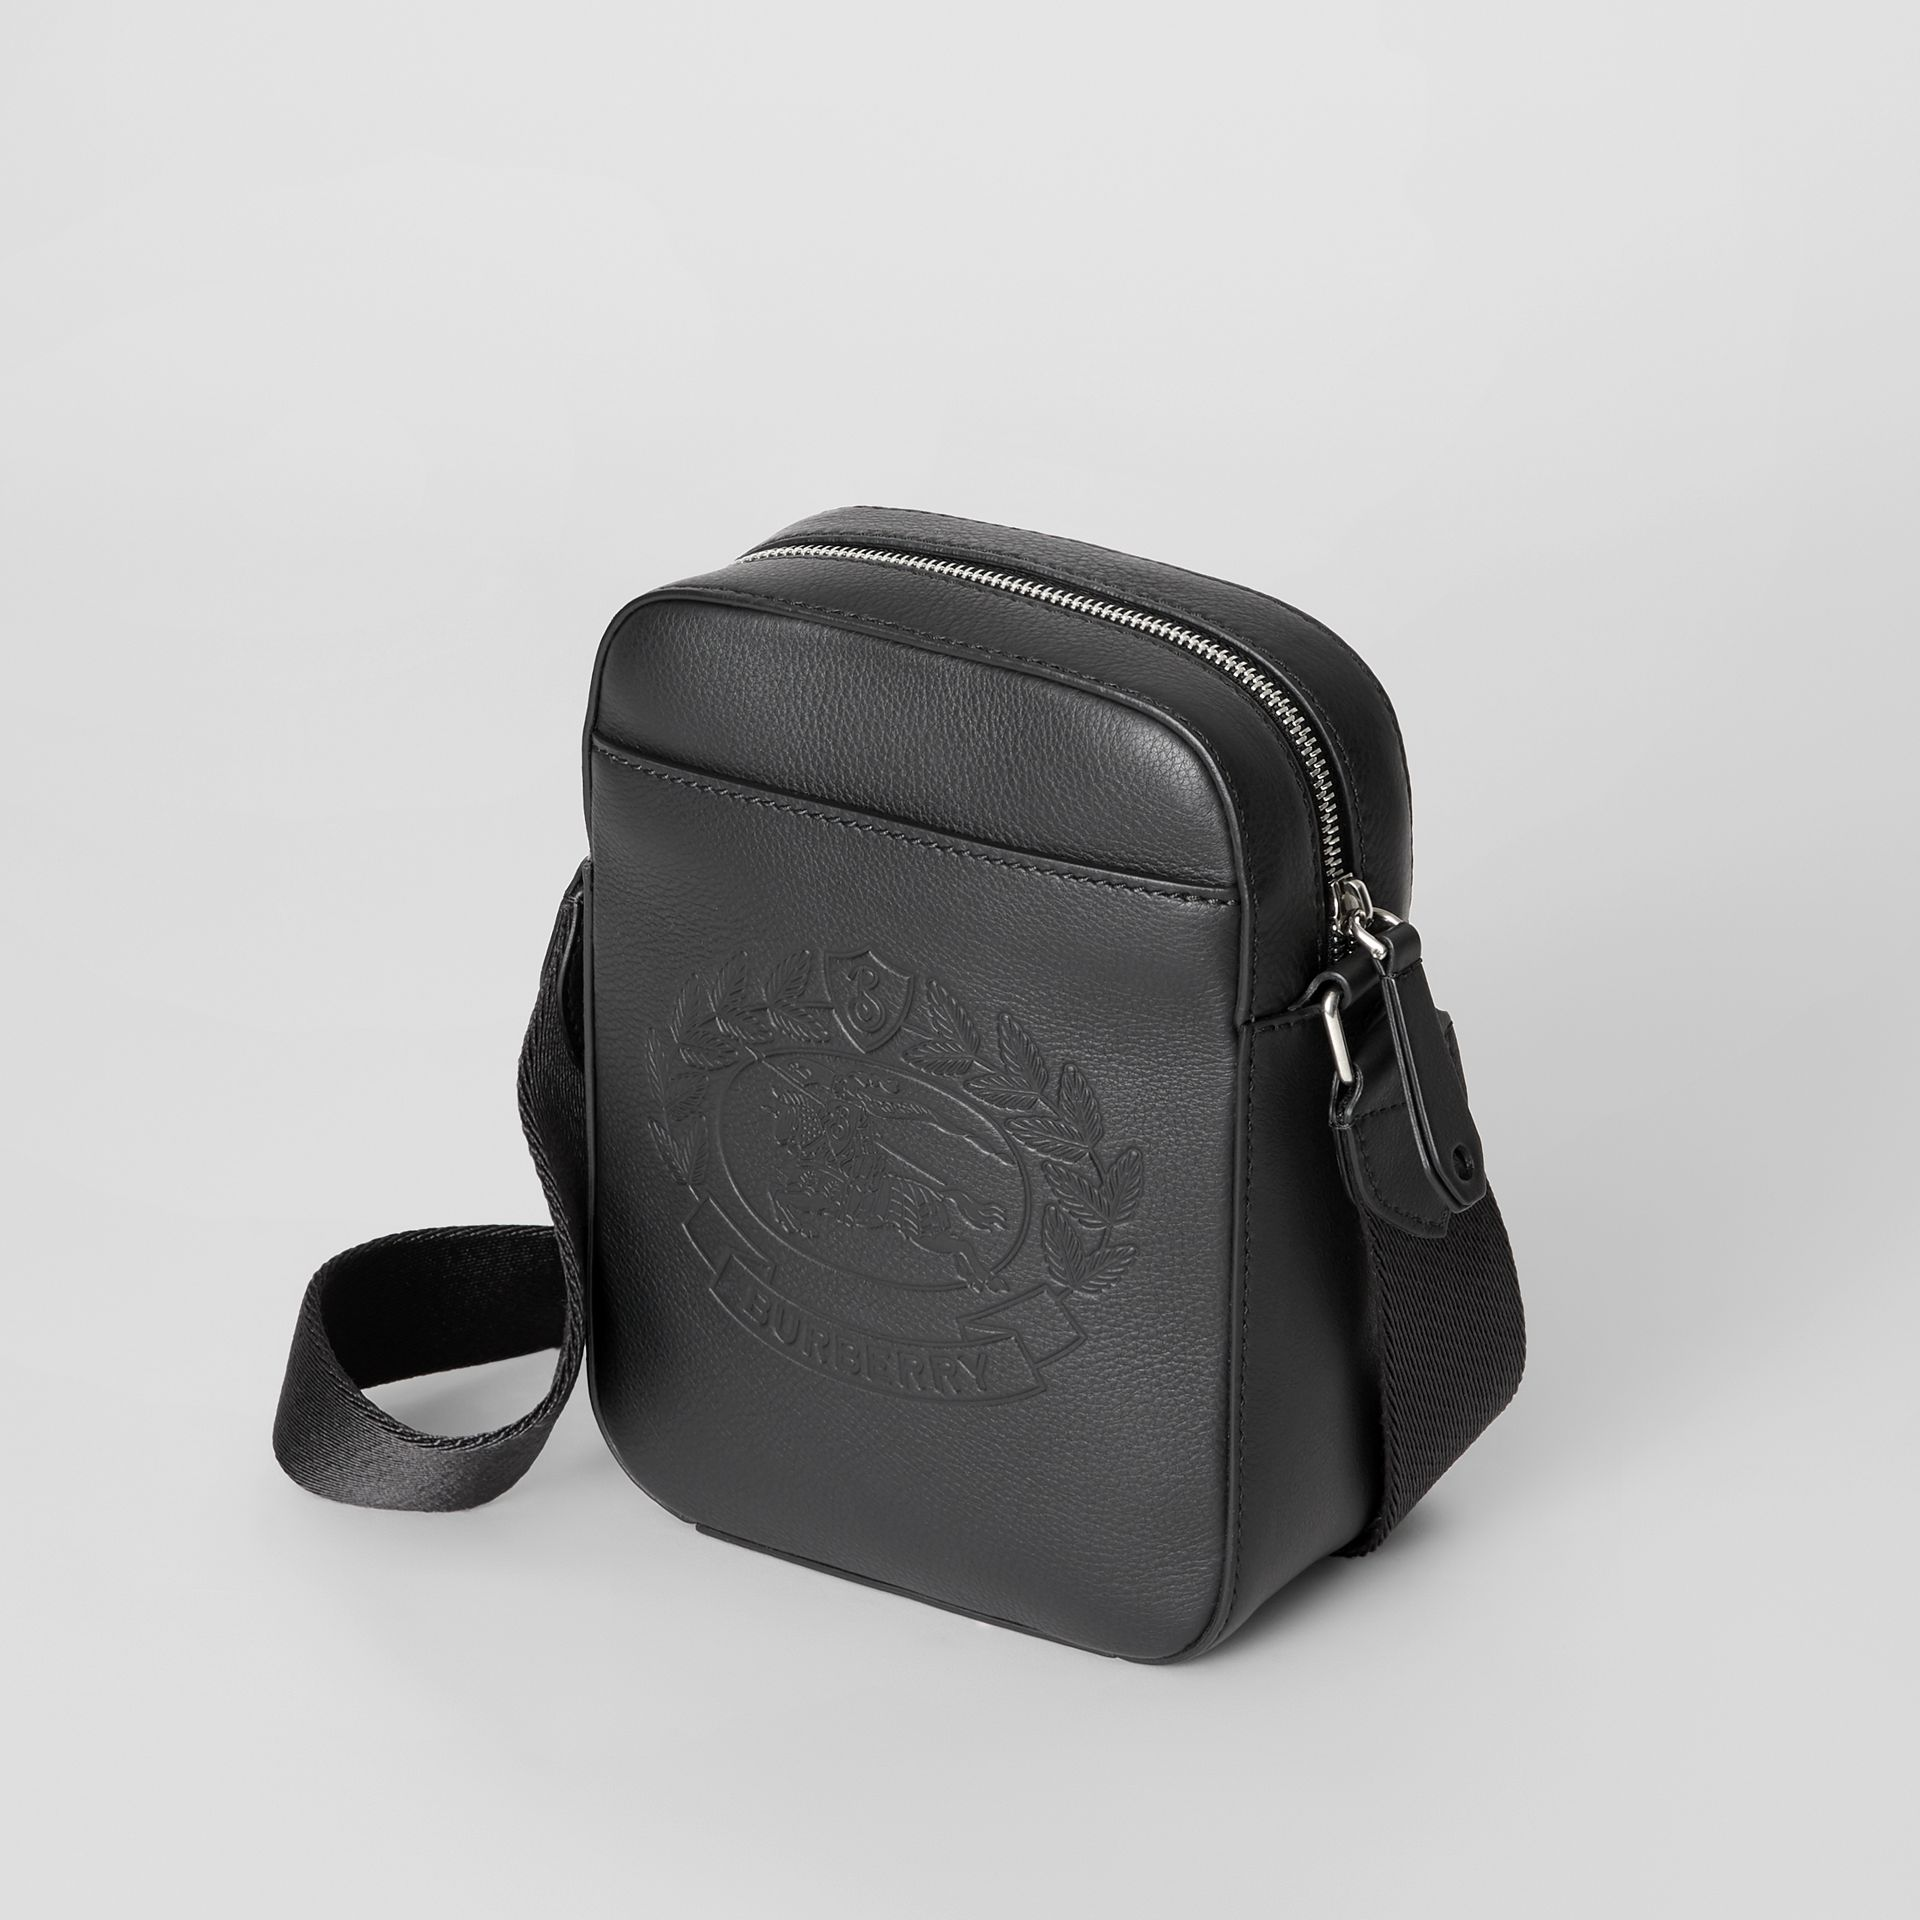 Small Embossed Crest Leather Crossbody Bag in Black - Men | Burberry - gallery image 4